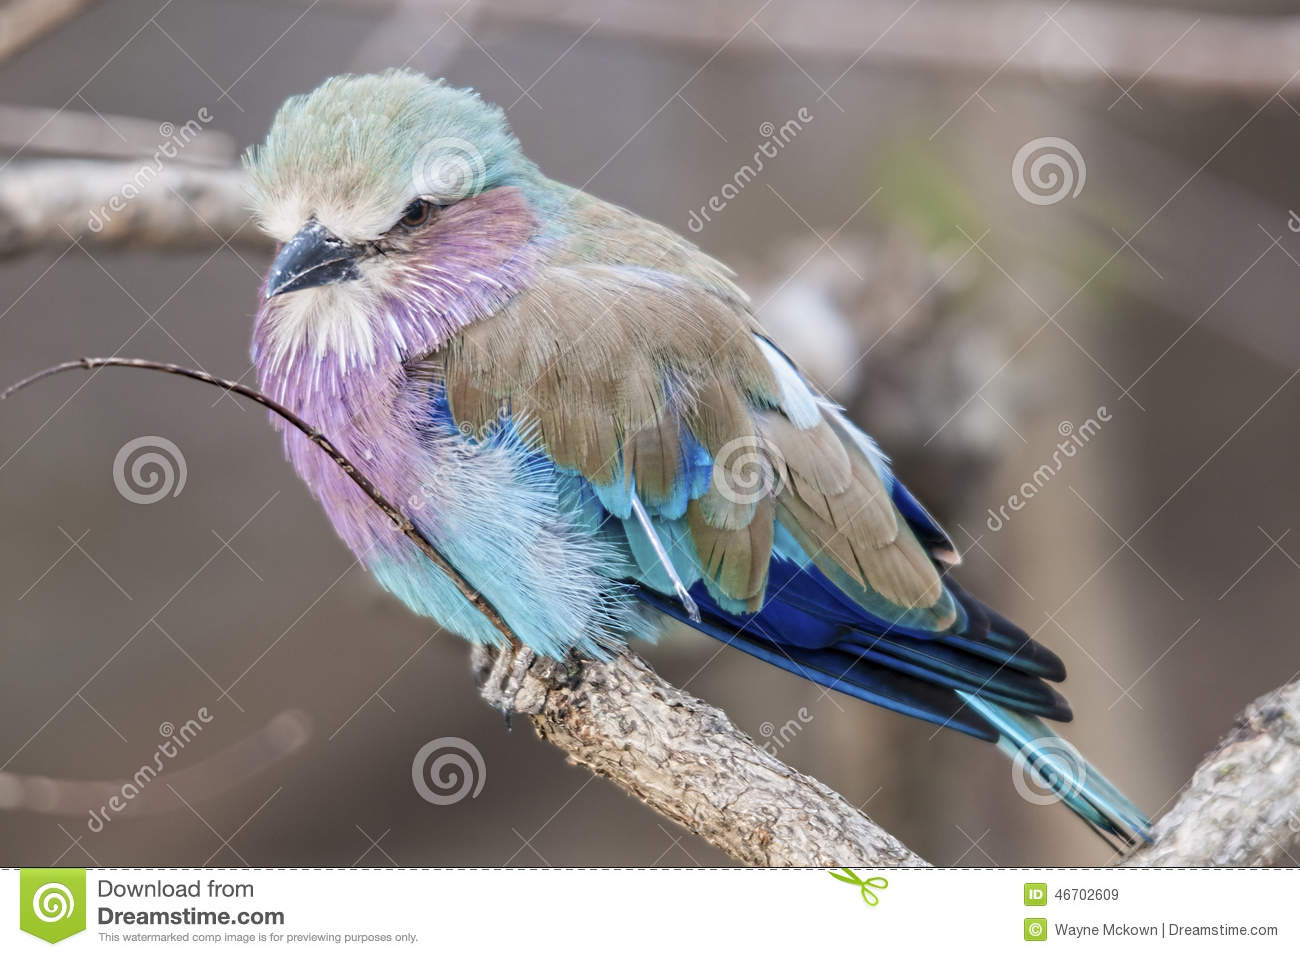 Download Wildlife Photography Of A African Lilac Breasted Roller Bird Stock Image - Image of nature, african: 46702609